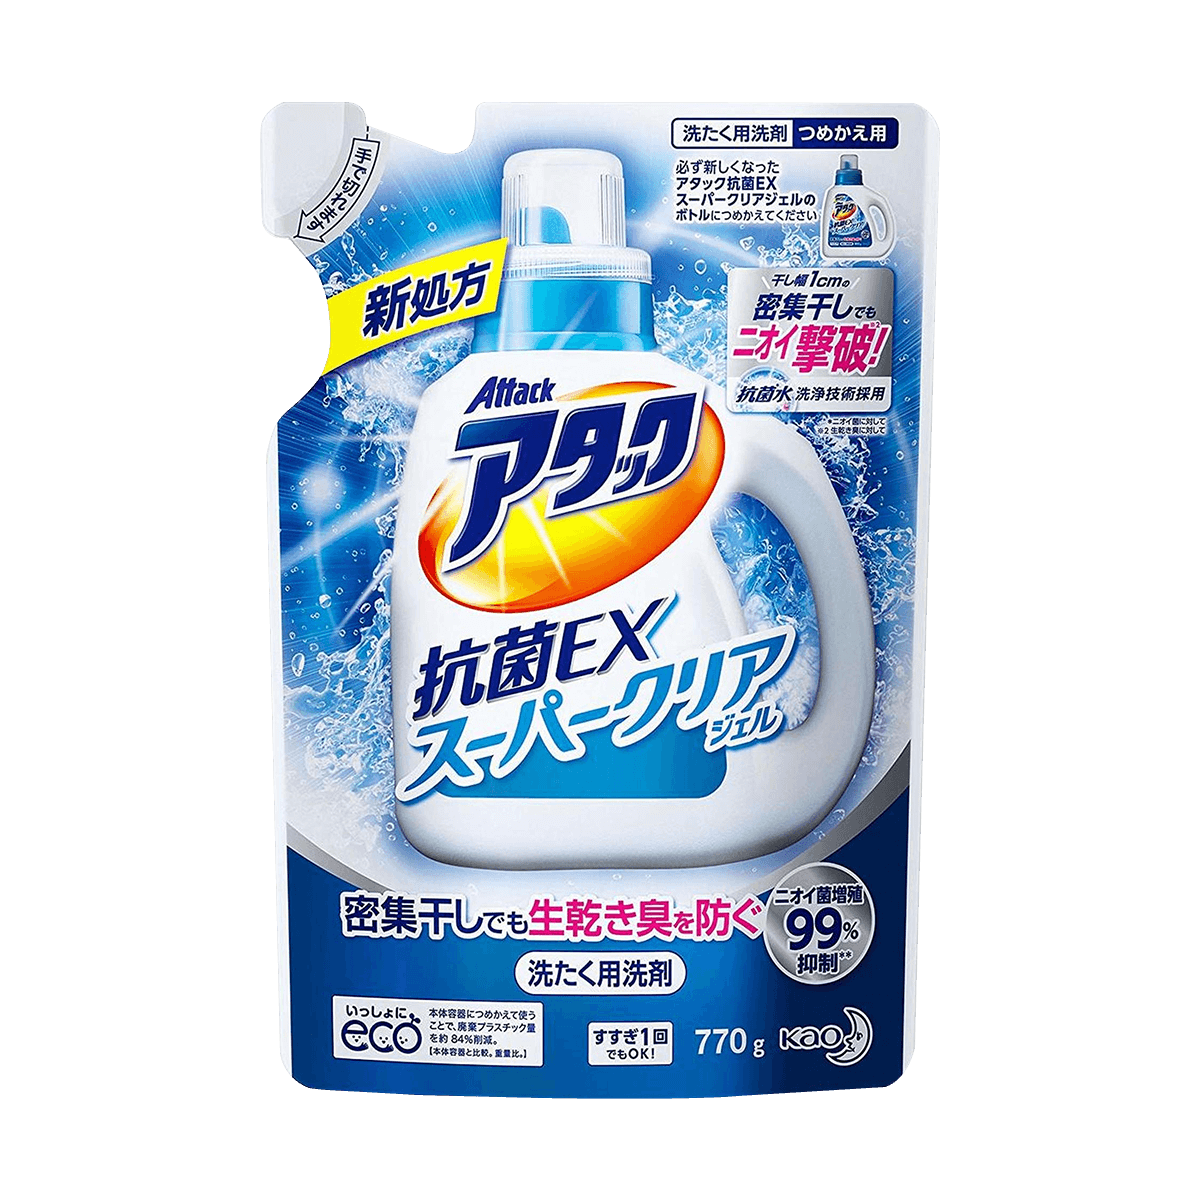 Yamibuy.com:Customer reviews:【New】KAO Enzymes Wash Laundry Detergent Antibacterial 770g